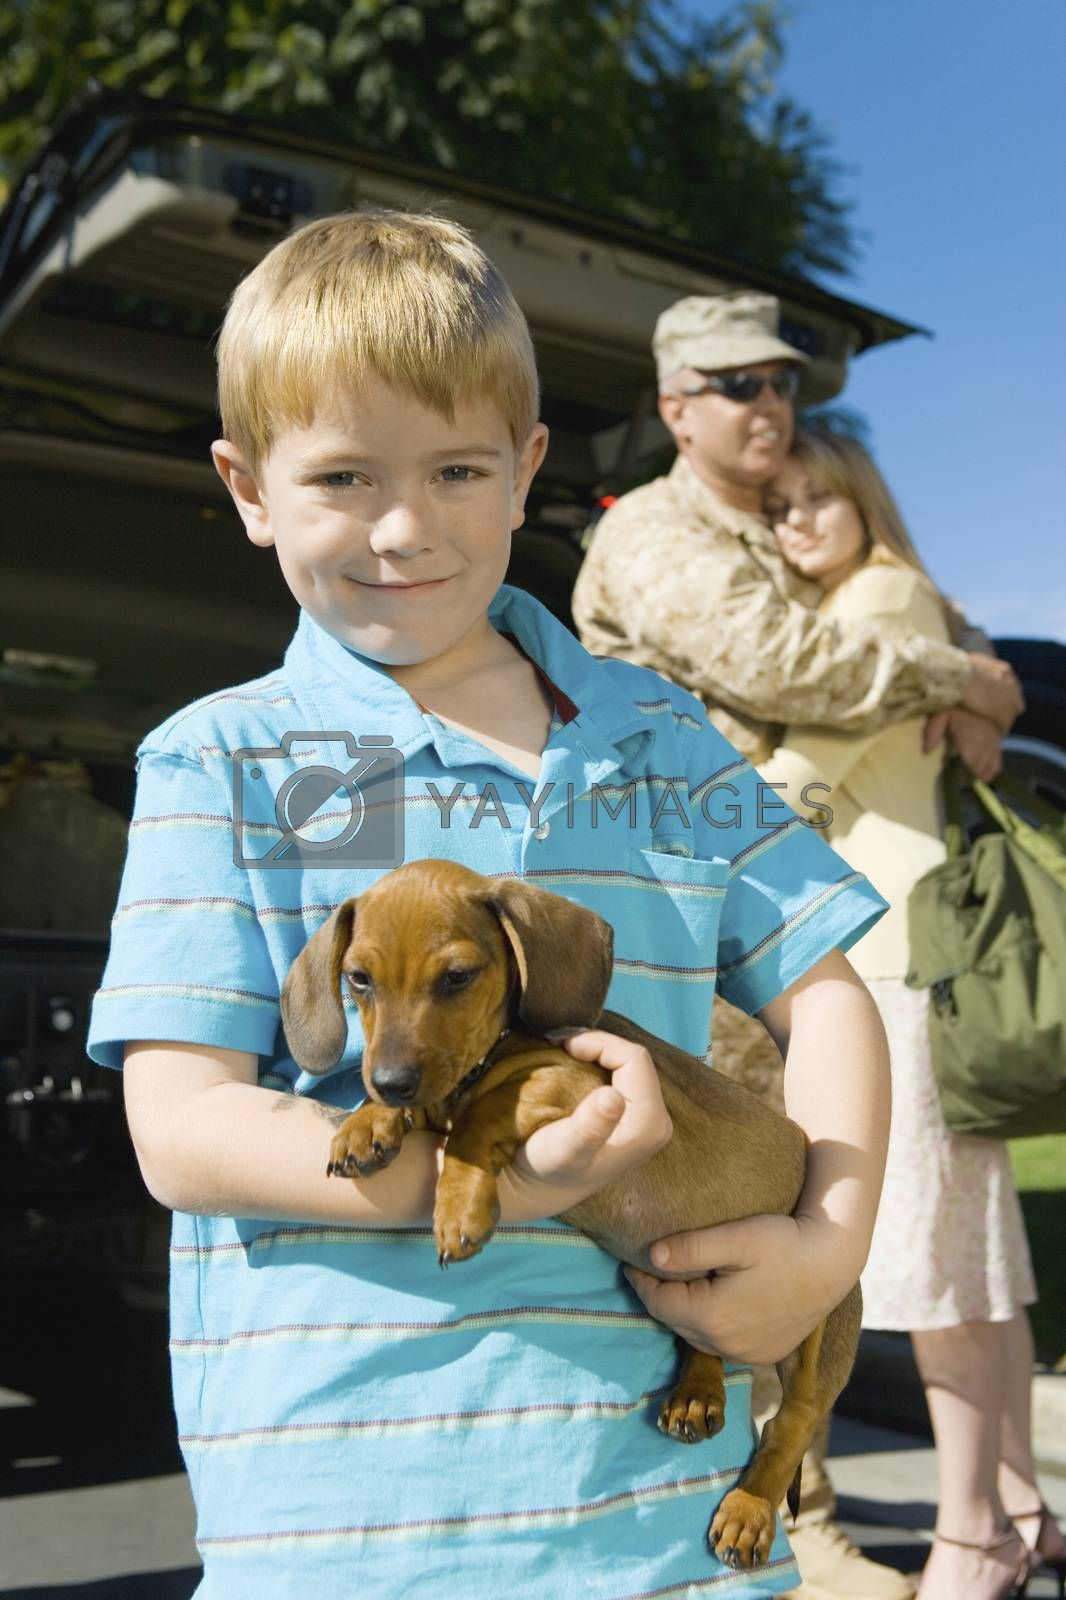 Boy Carrying Dog With Parents In Background